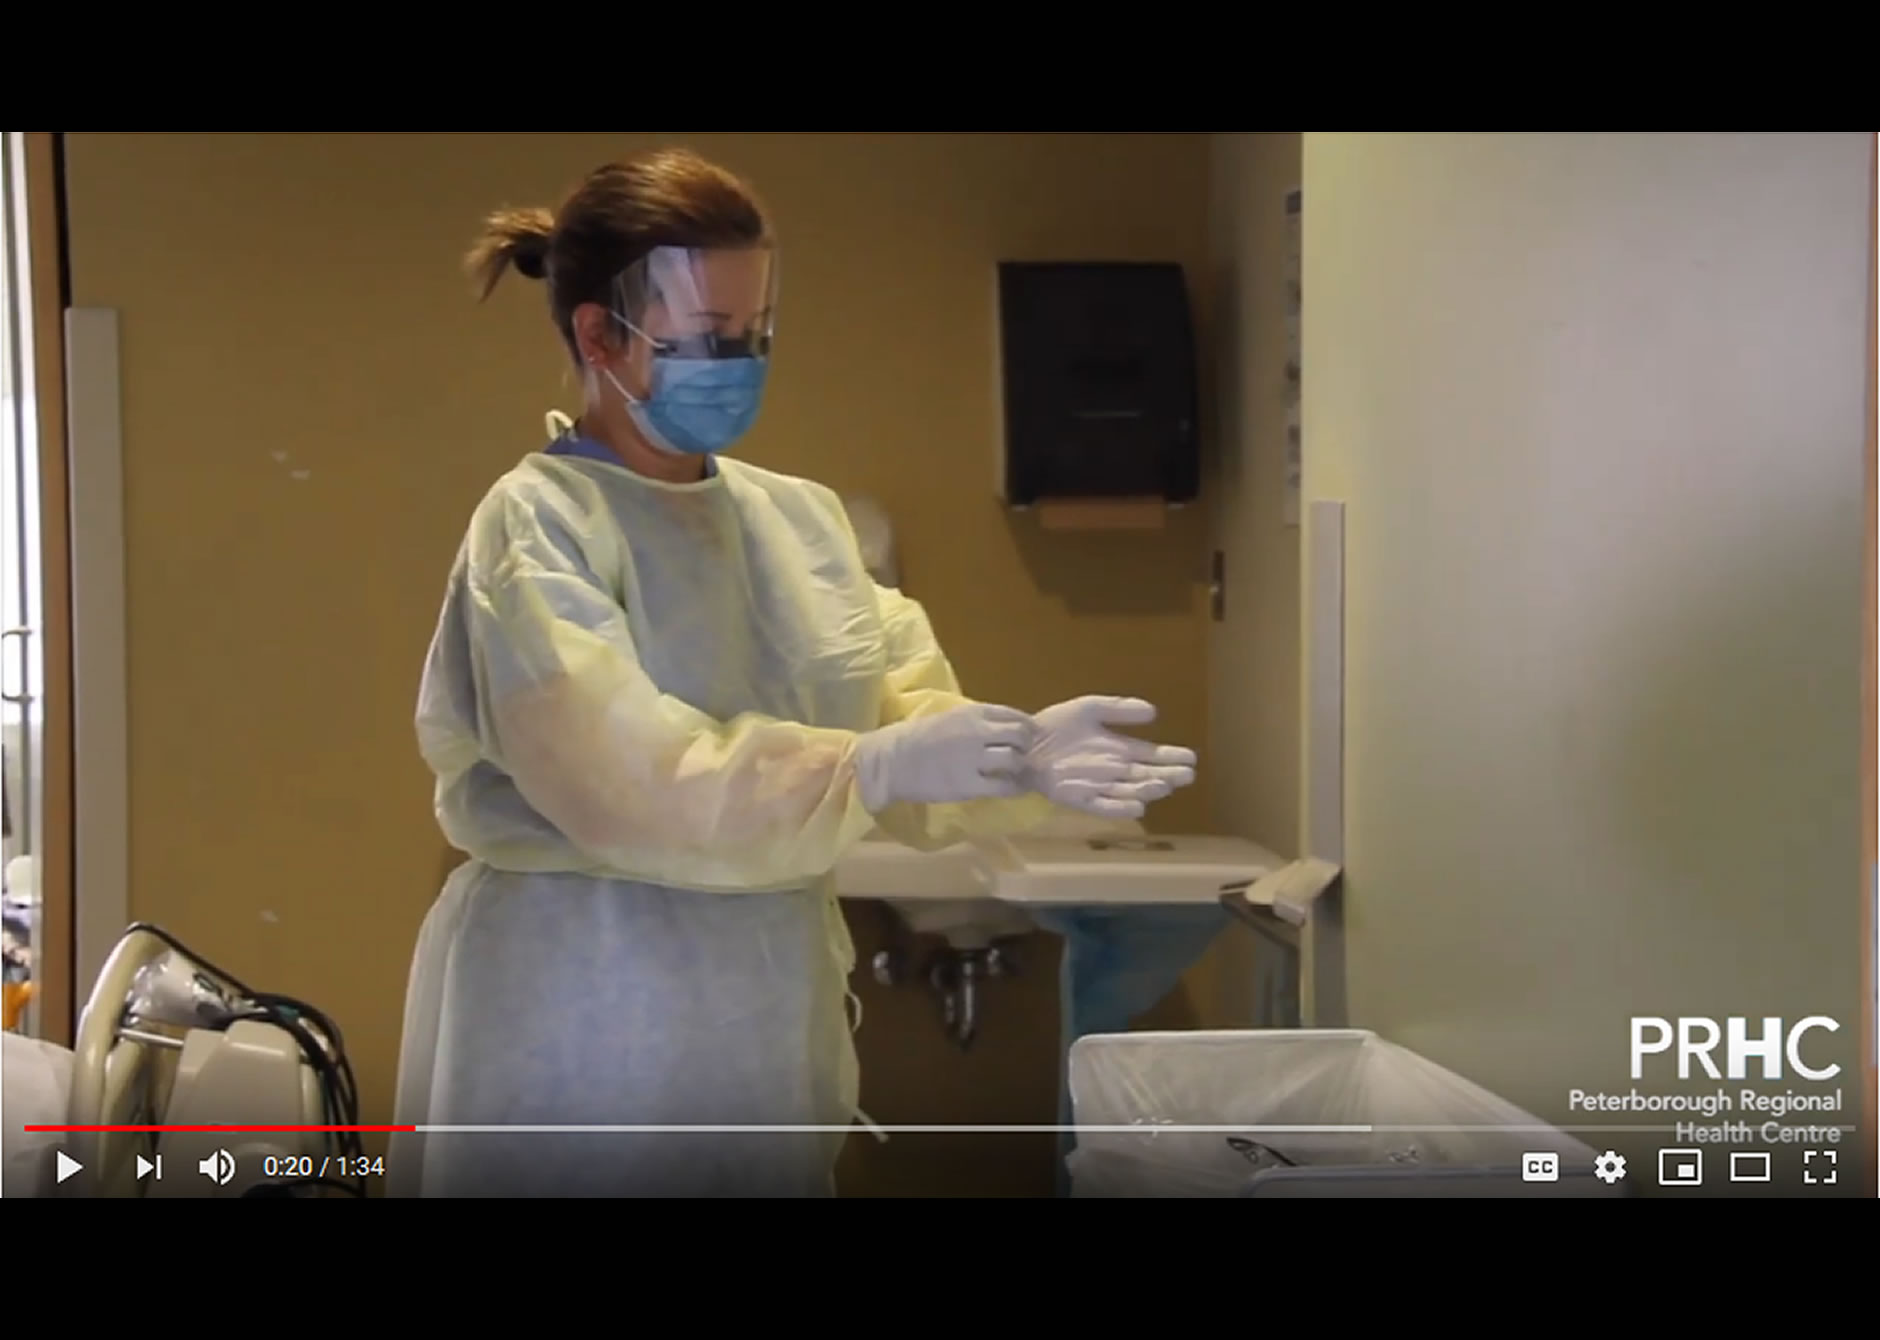 Doffing Personal Protective Equipment